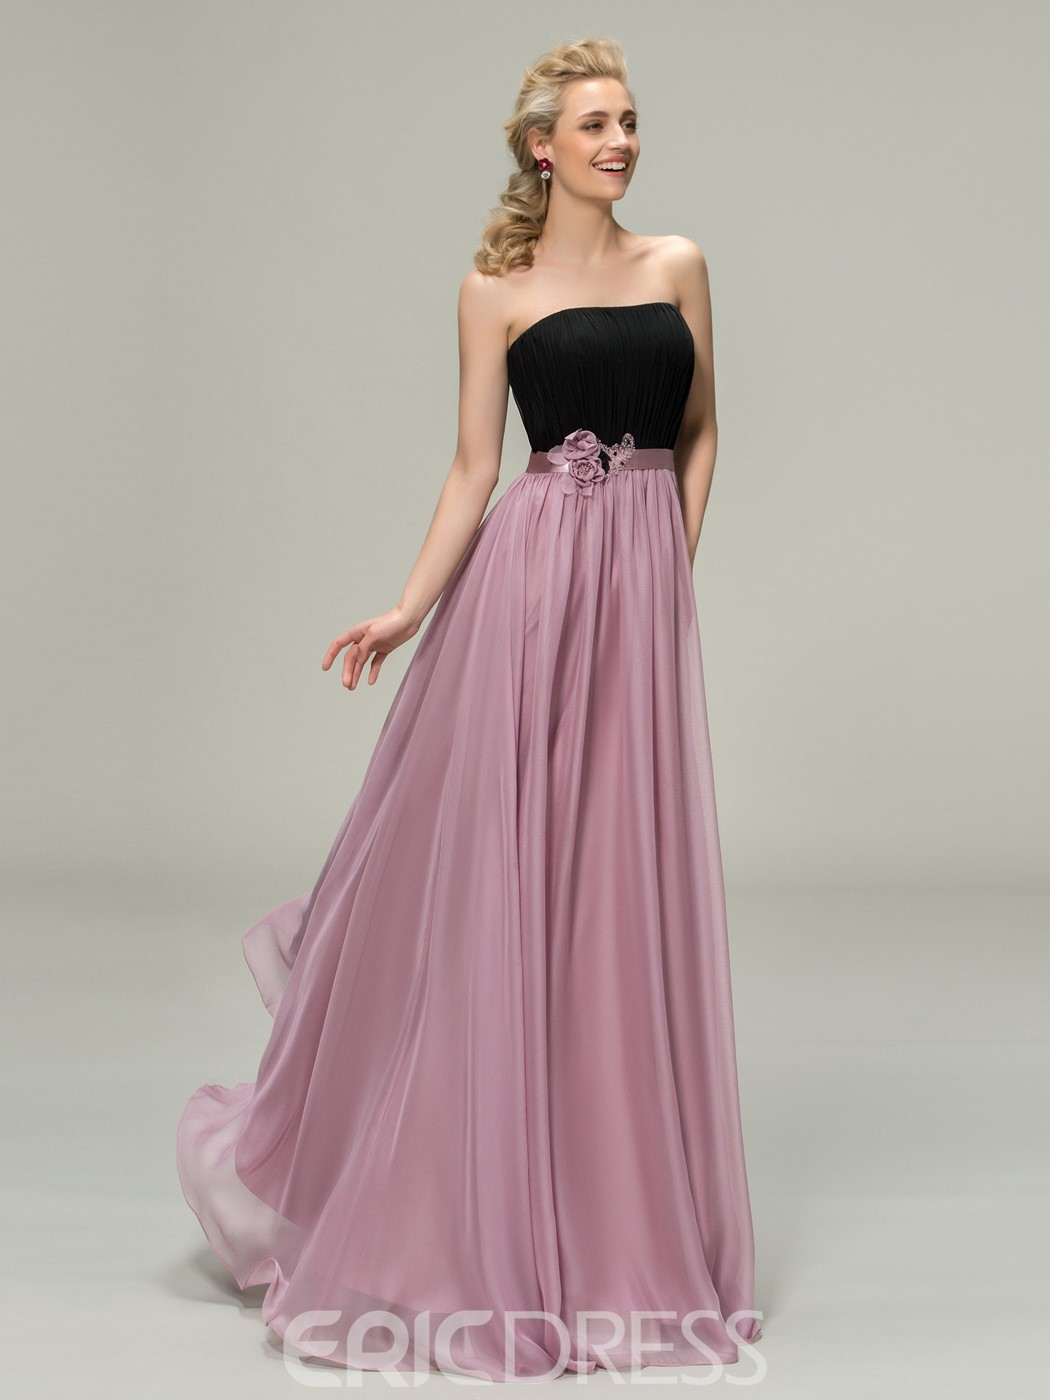 Ericdress Strapless Flowers Beading Bridesmaid Dress